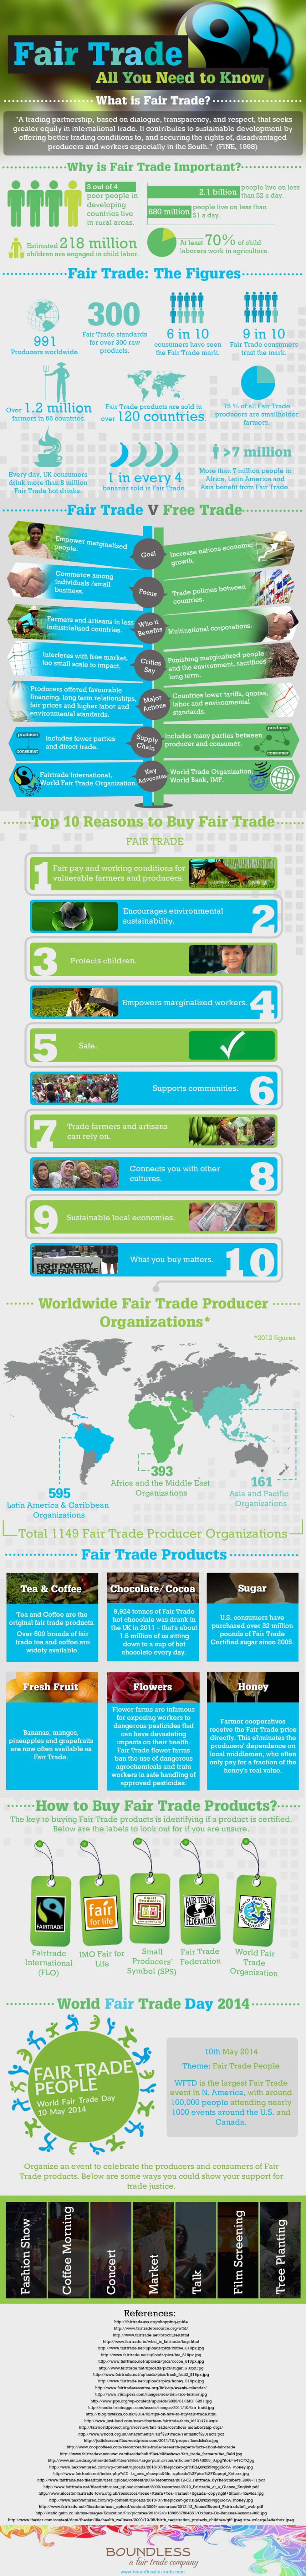 Fair Trade All You Need To Know